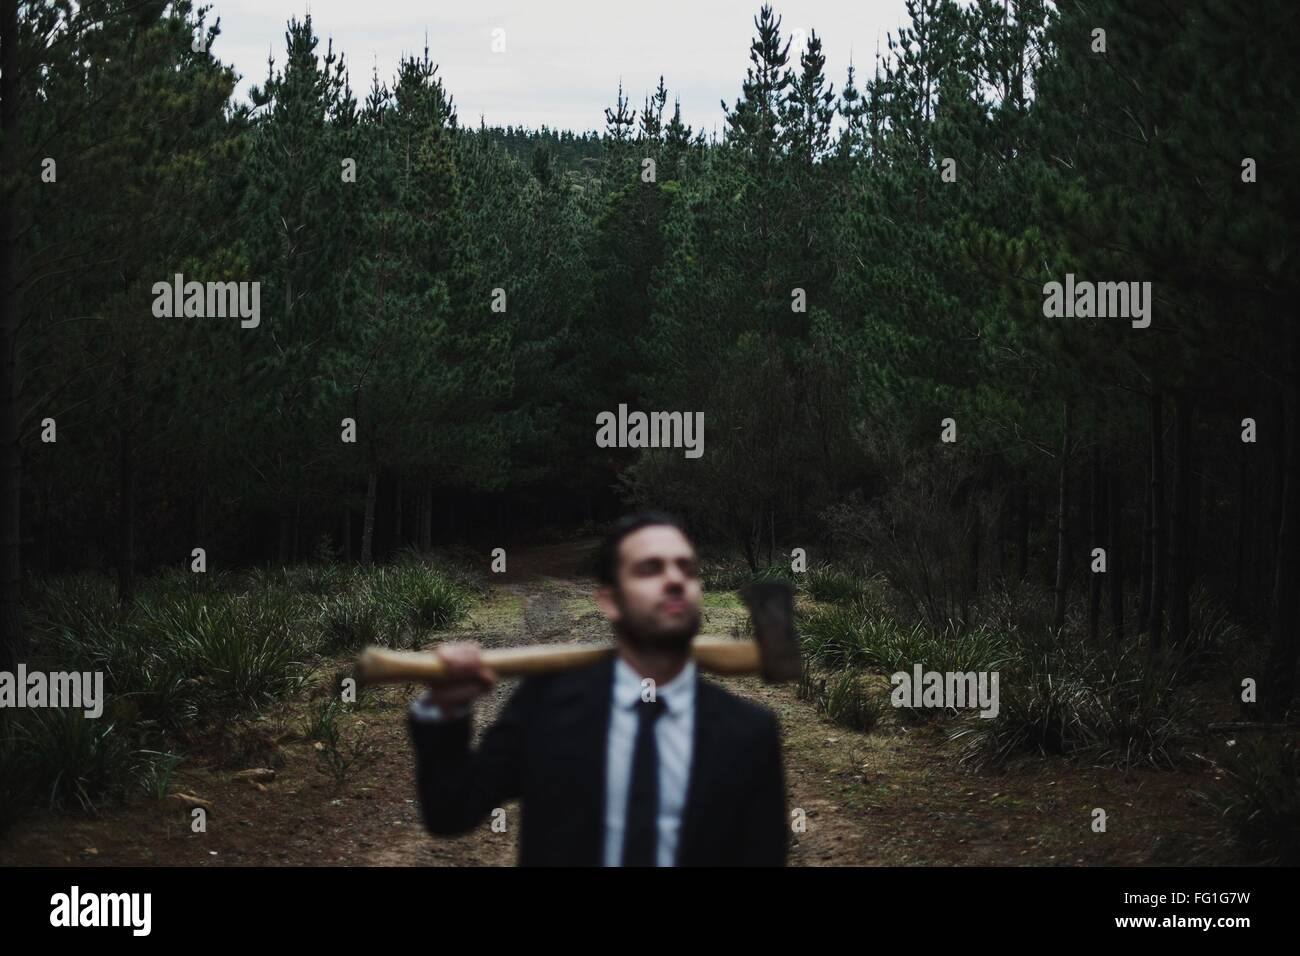 Man In Suit Holding Axe In Forest - Stock Image